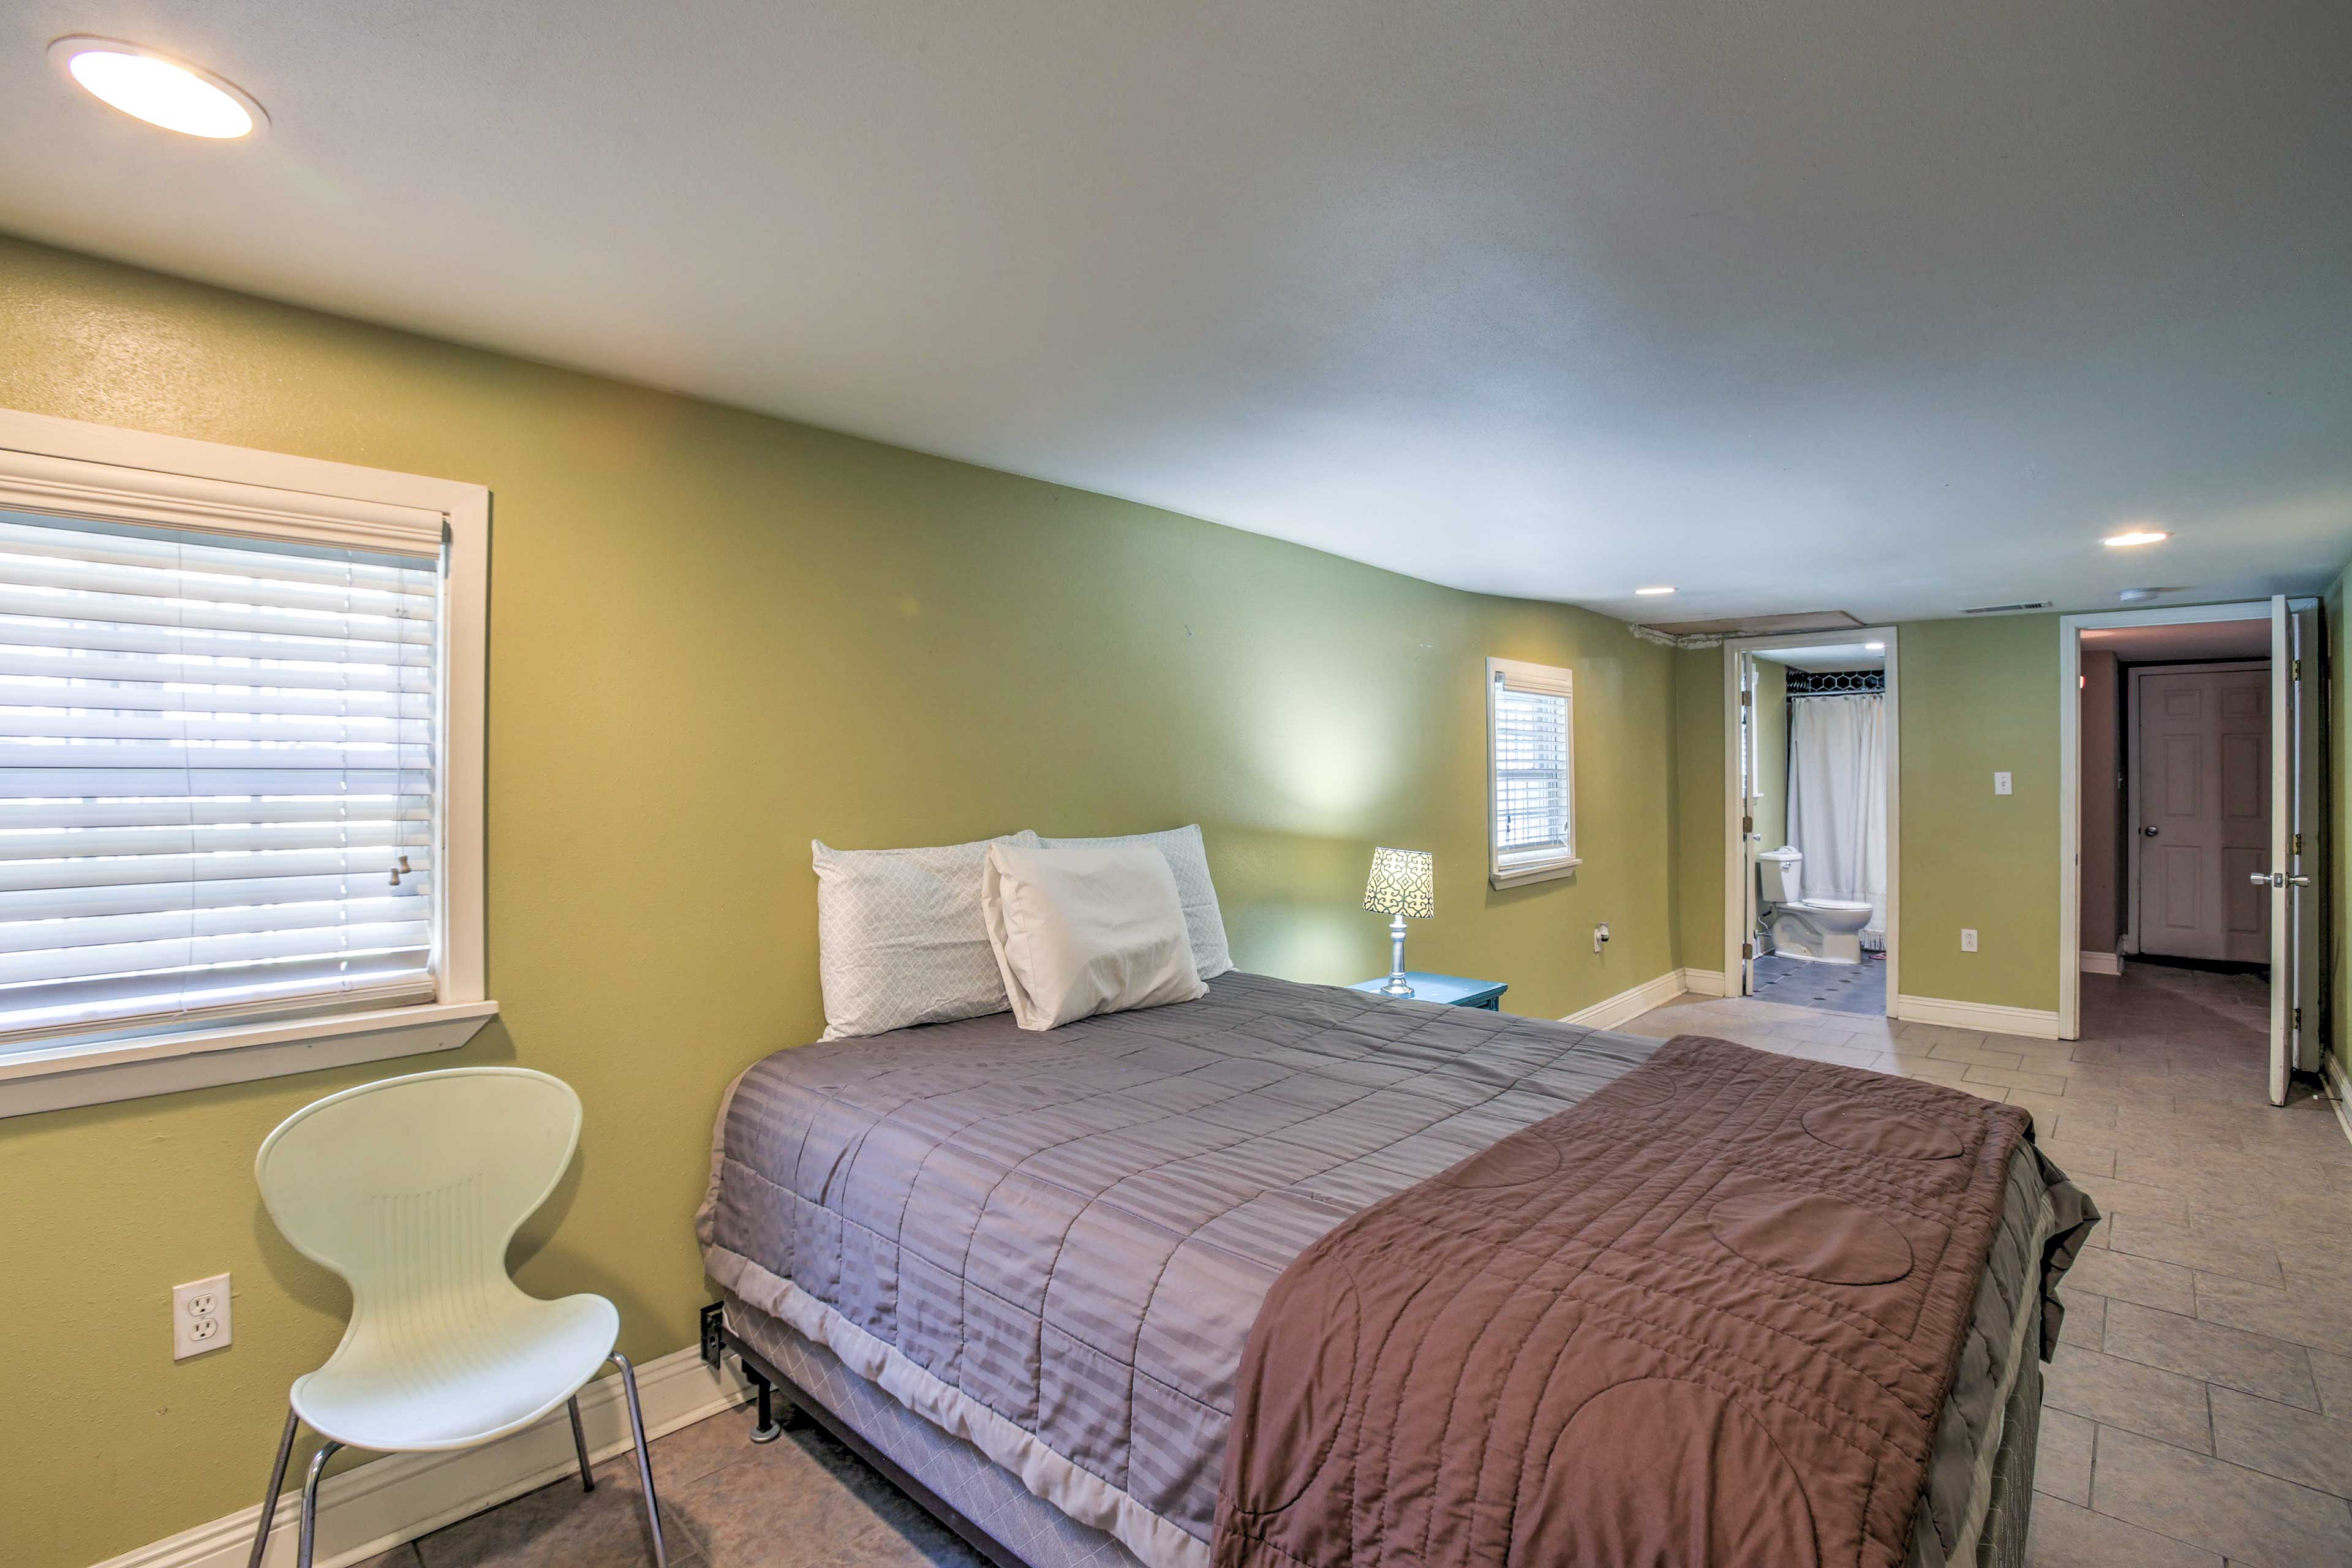 Downstairs, the master bedroom has a queen bed and an en-suite bathroom.